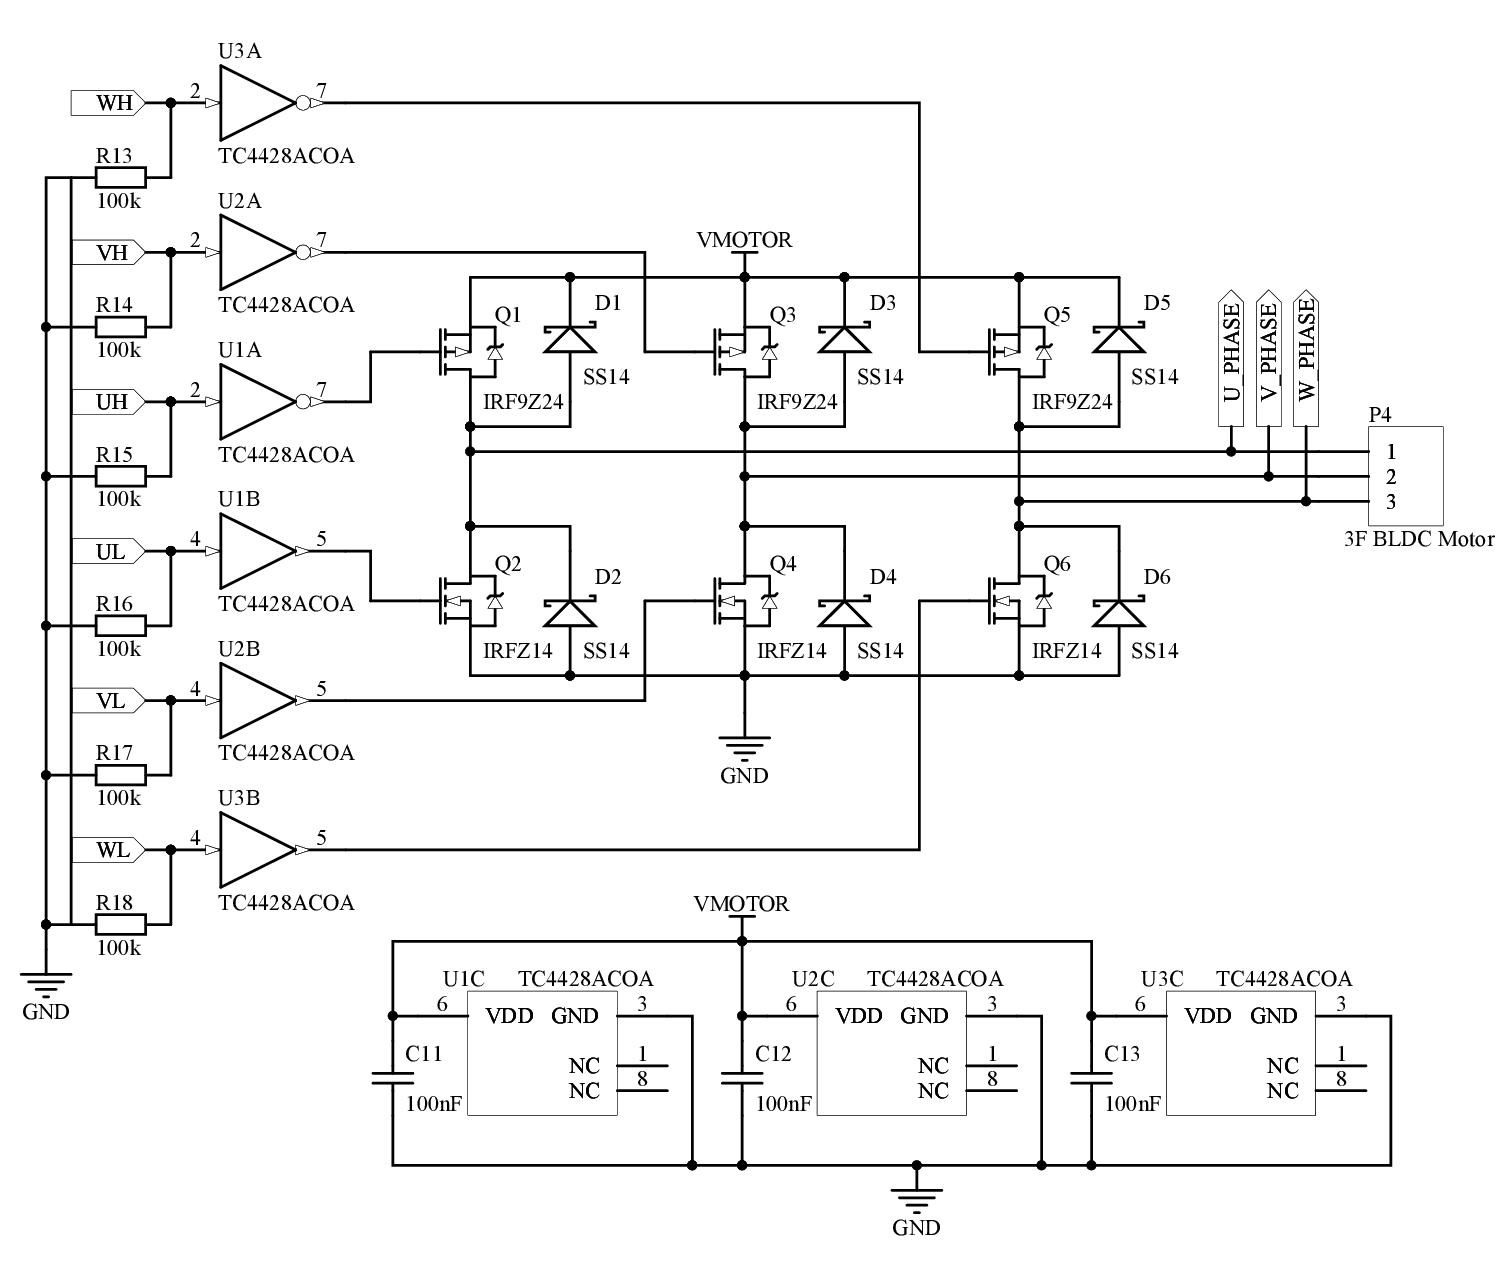 bldc_power_stage_circuit